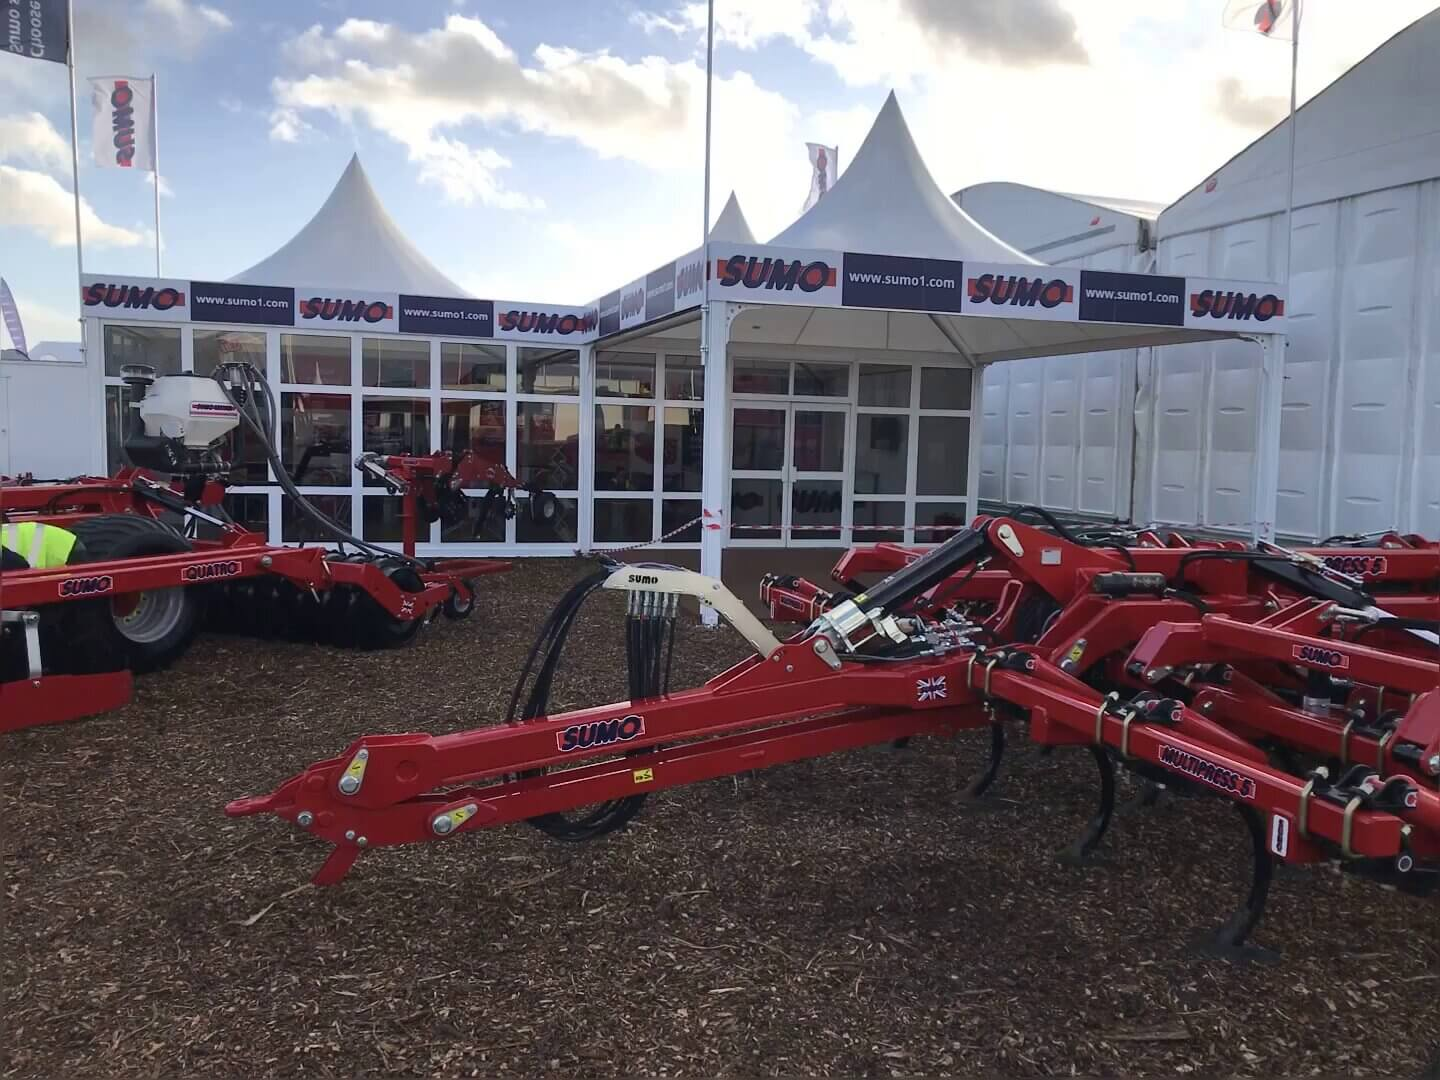 Sumo @ Lamma 2018 - Exhibition Stands